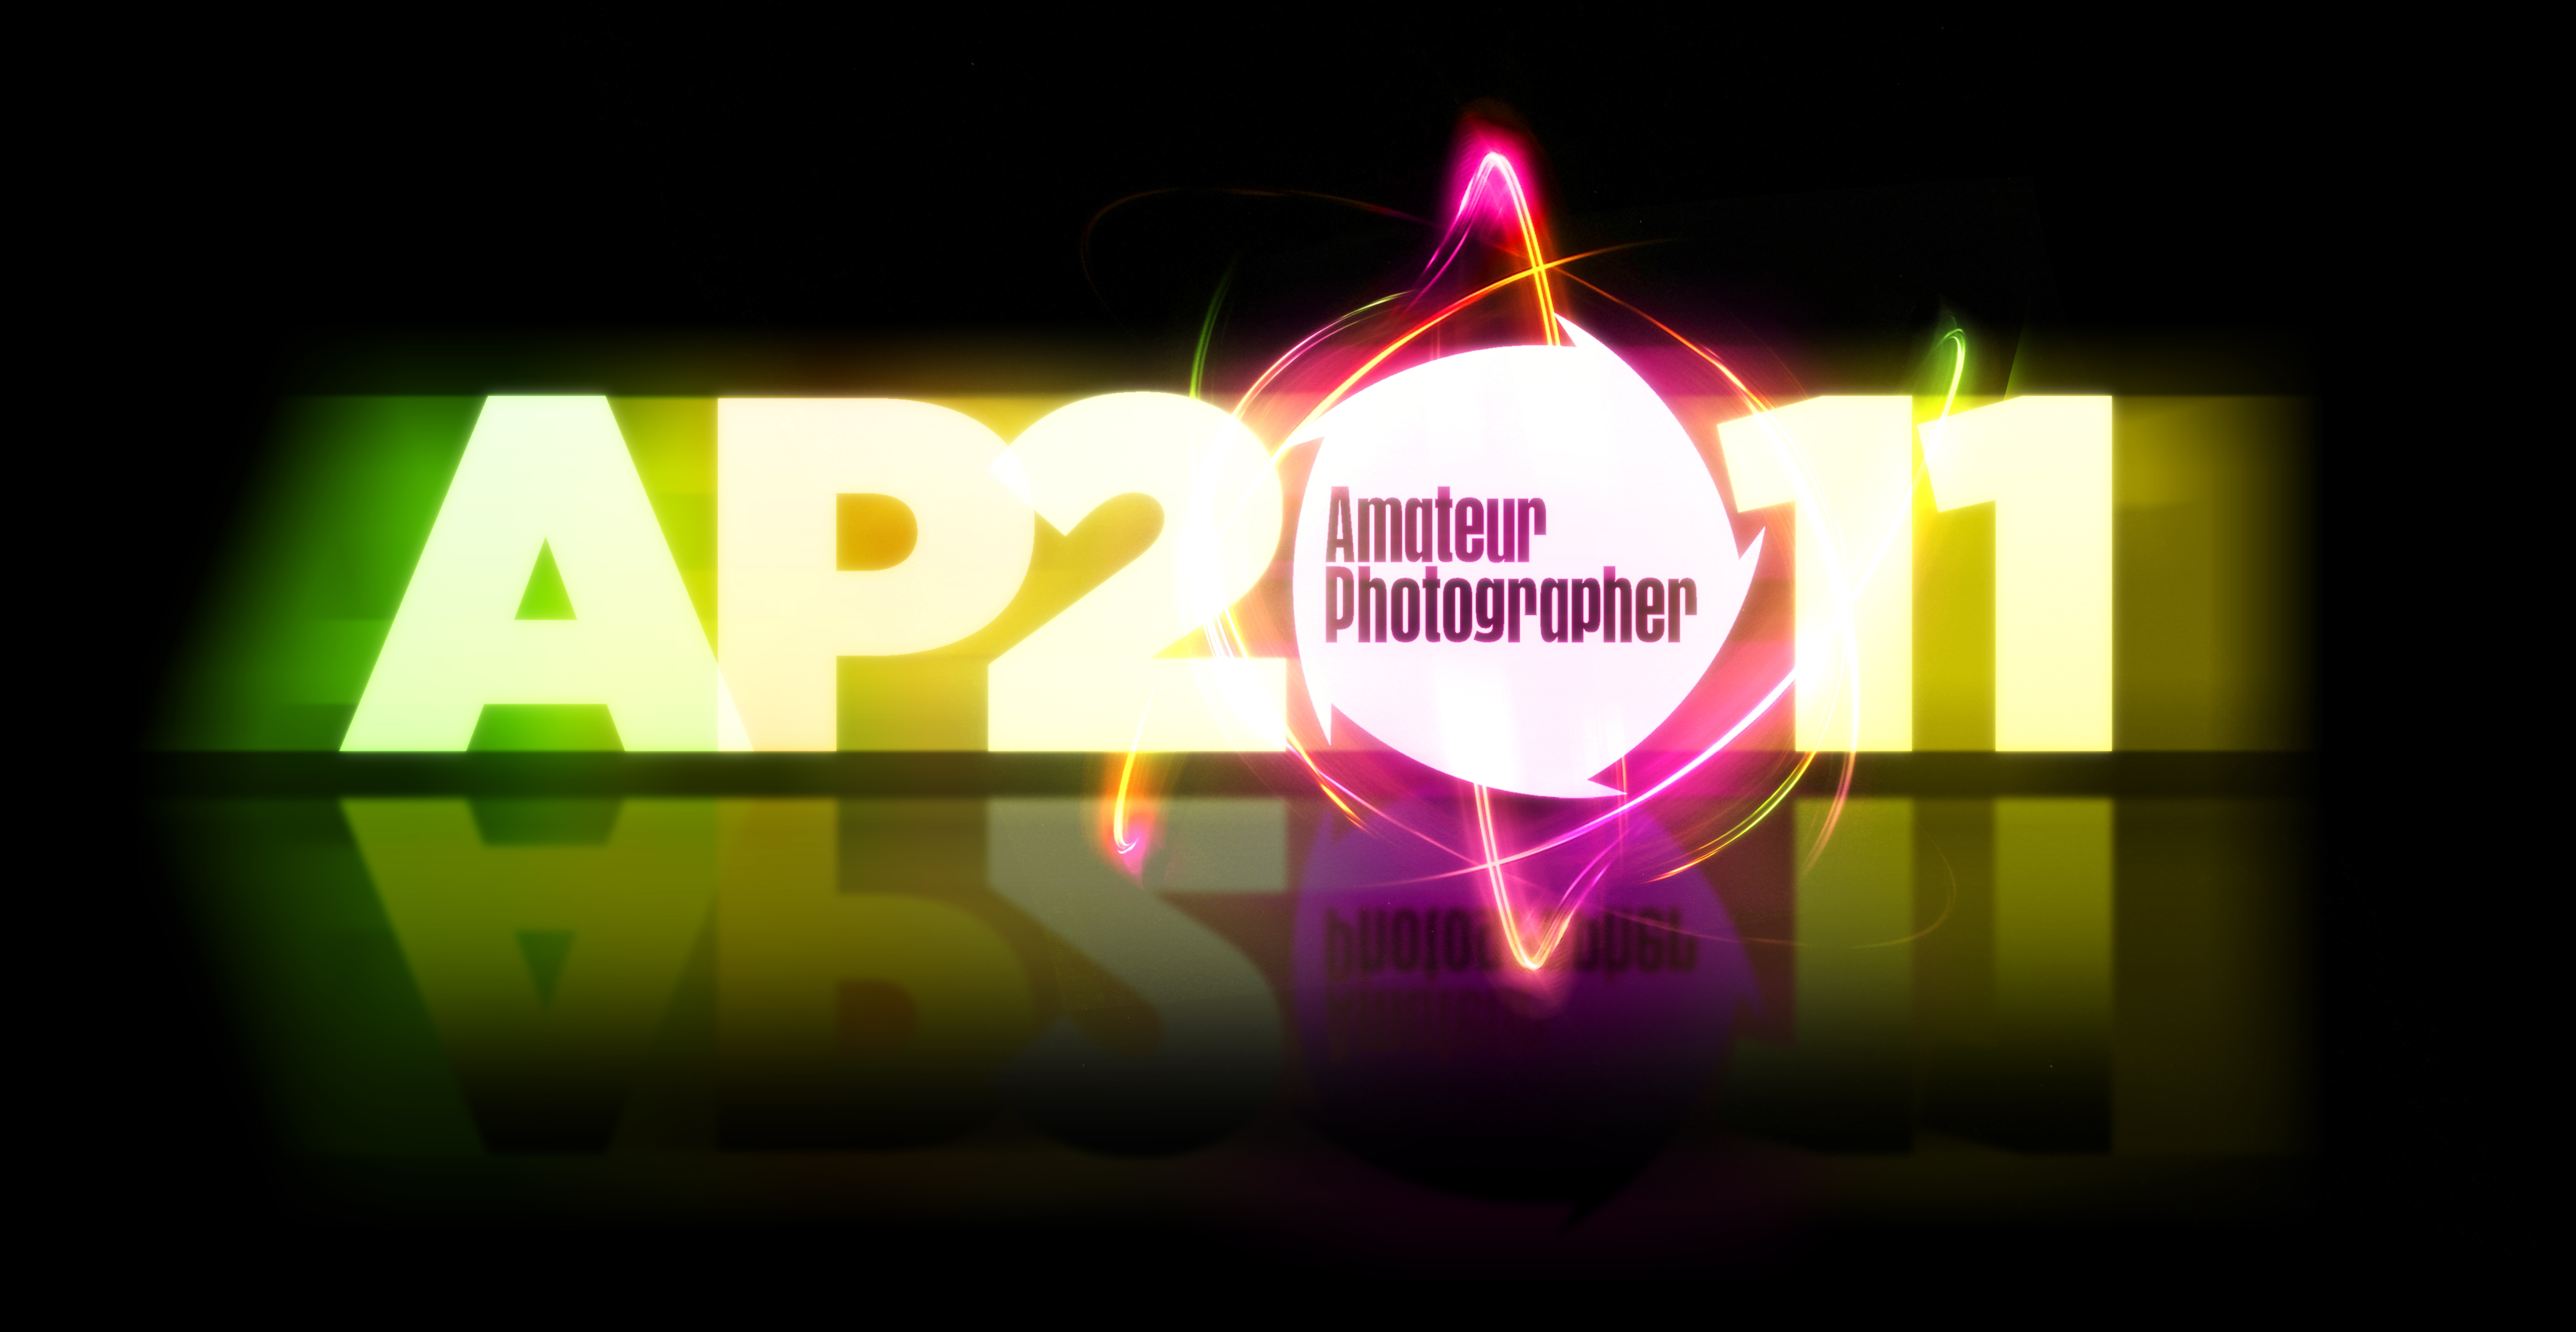 AP 2011 Awards winners soon to be announced